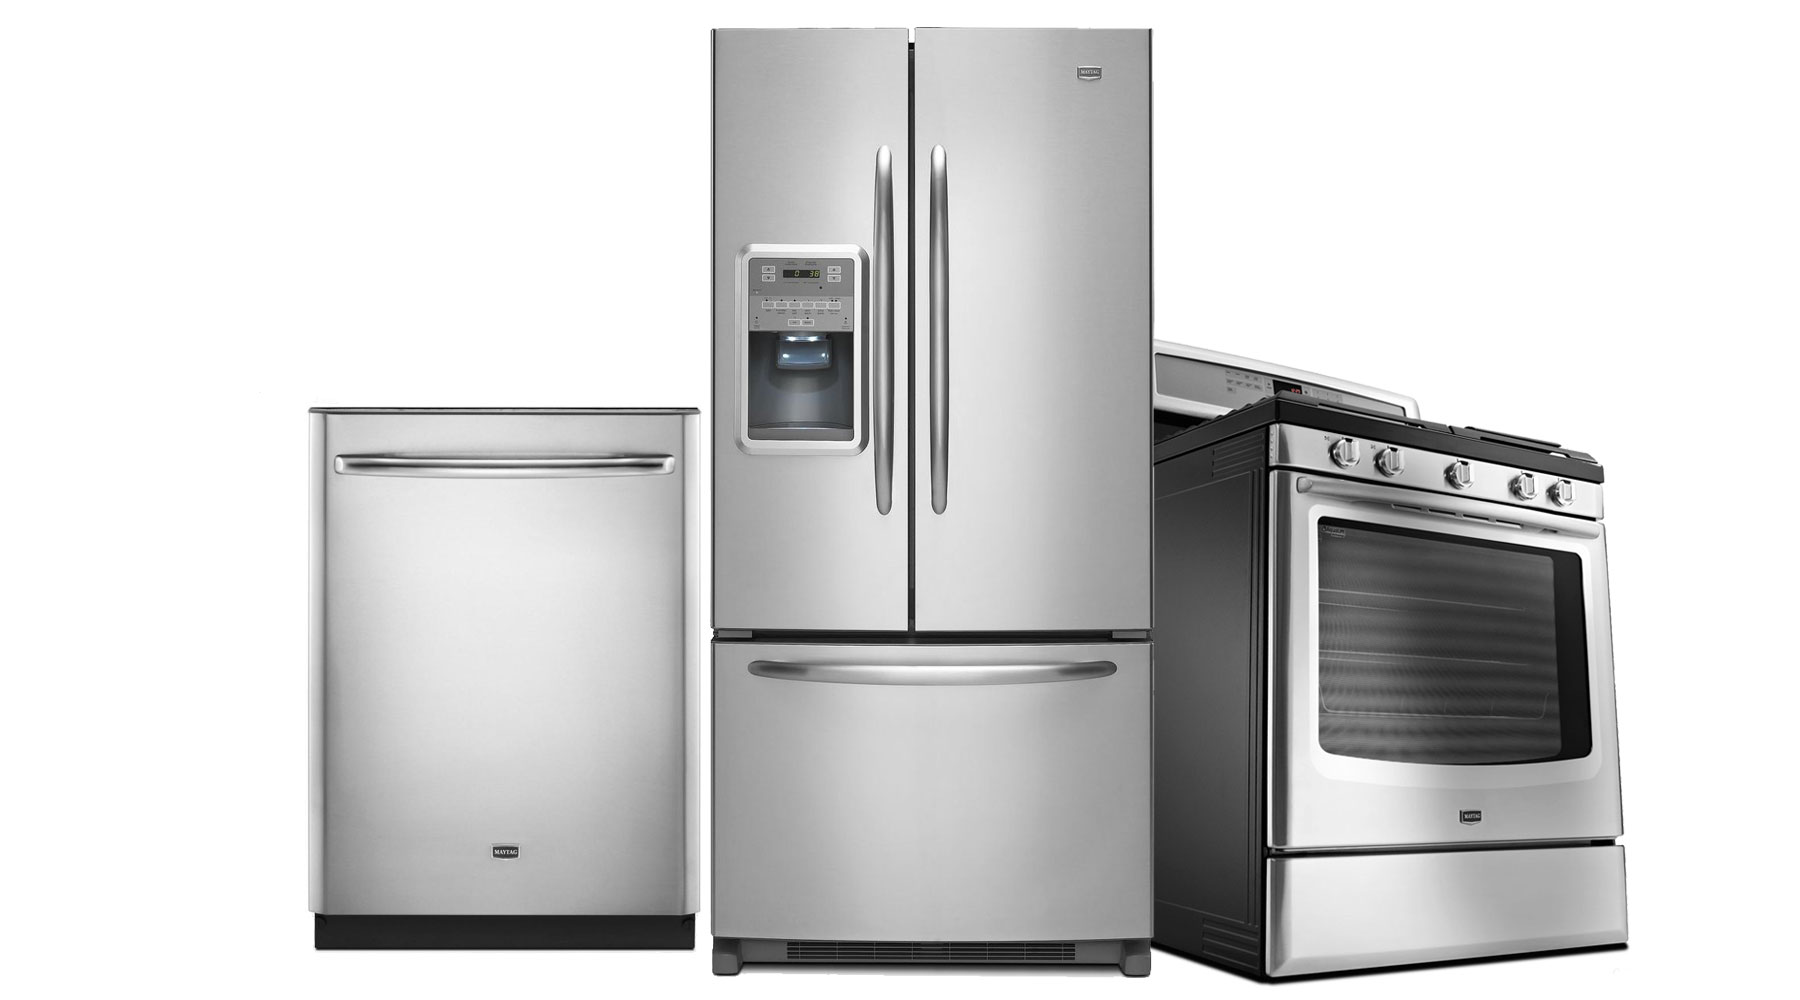 Appliance Kitchen Product Review Maytag Kitchen Appliances Row House Reno